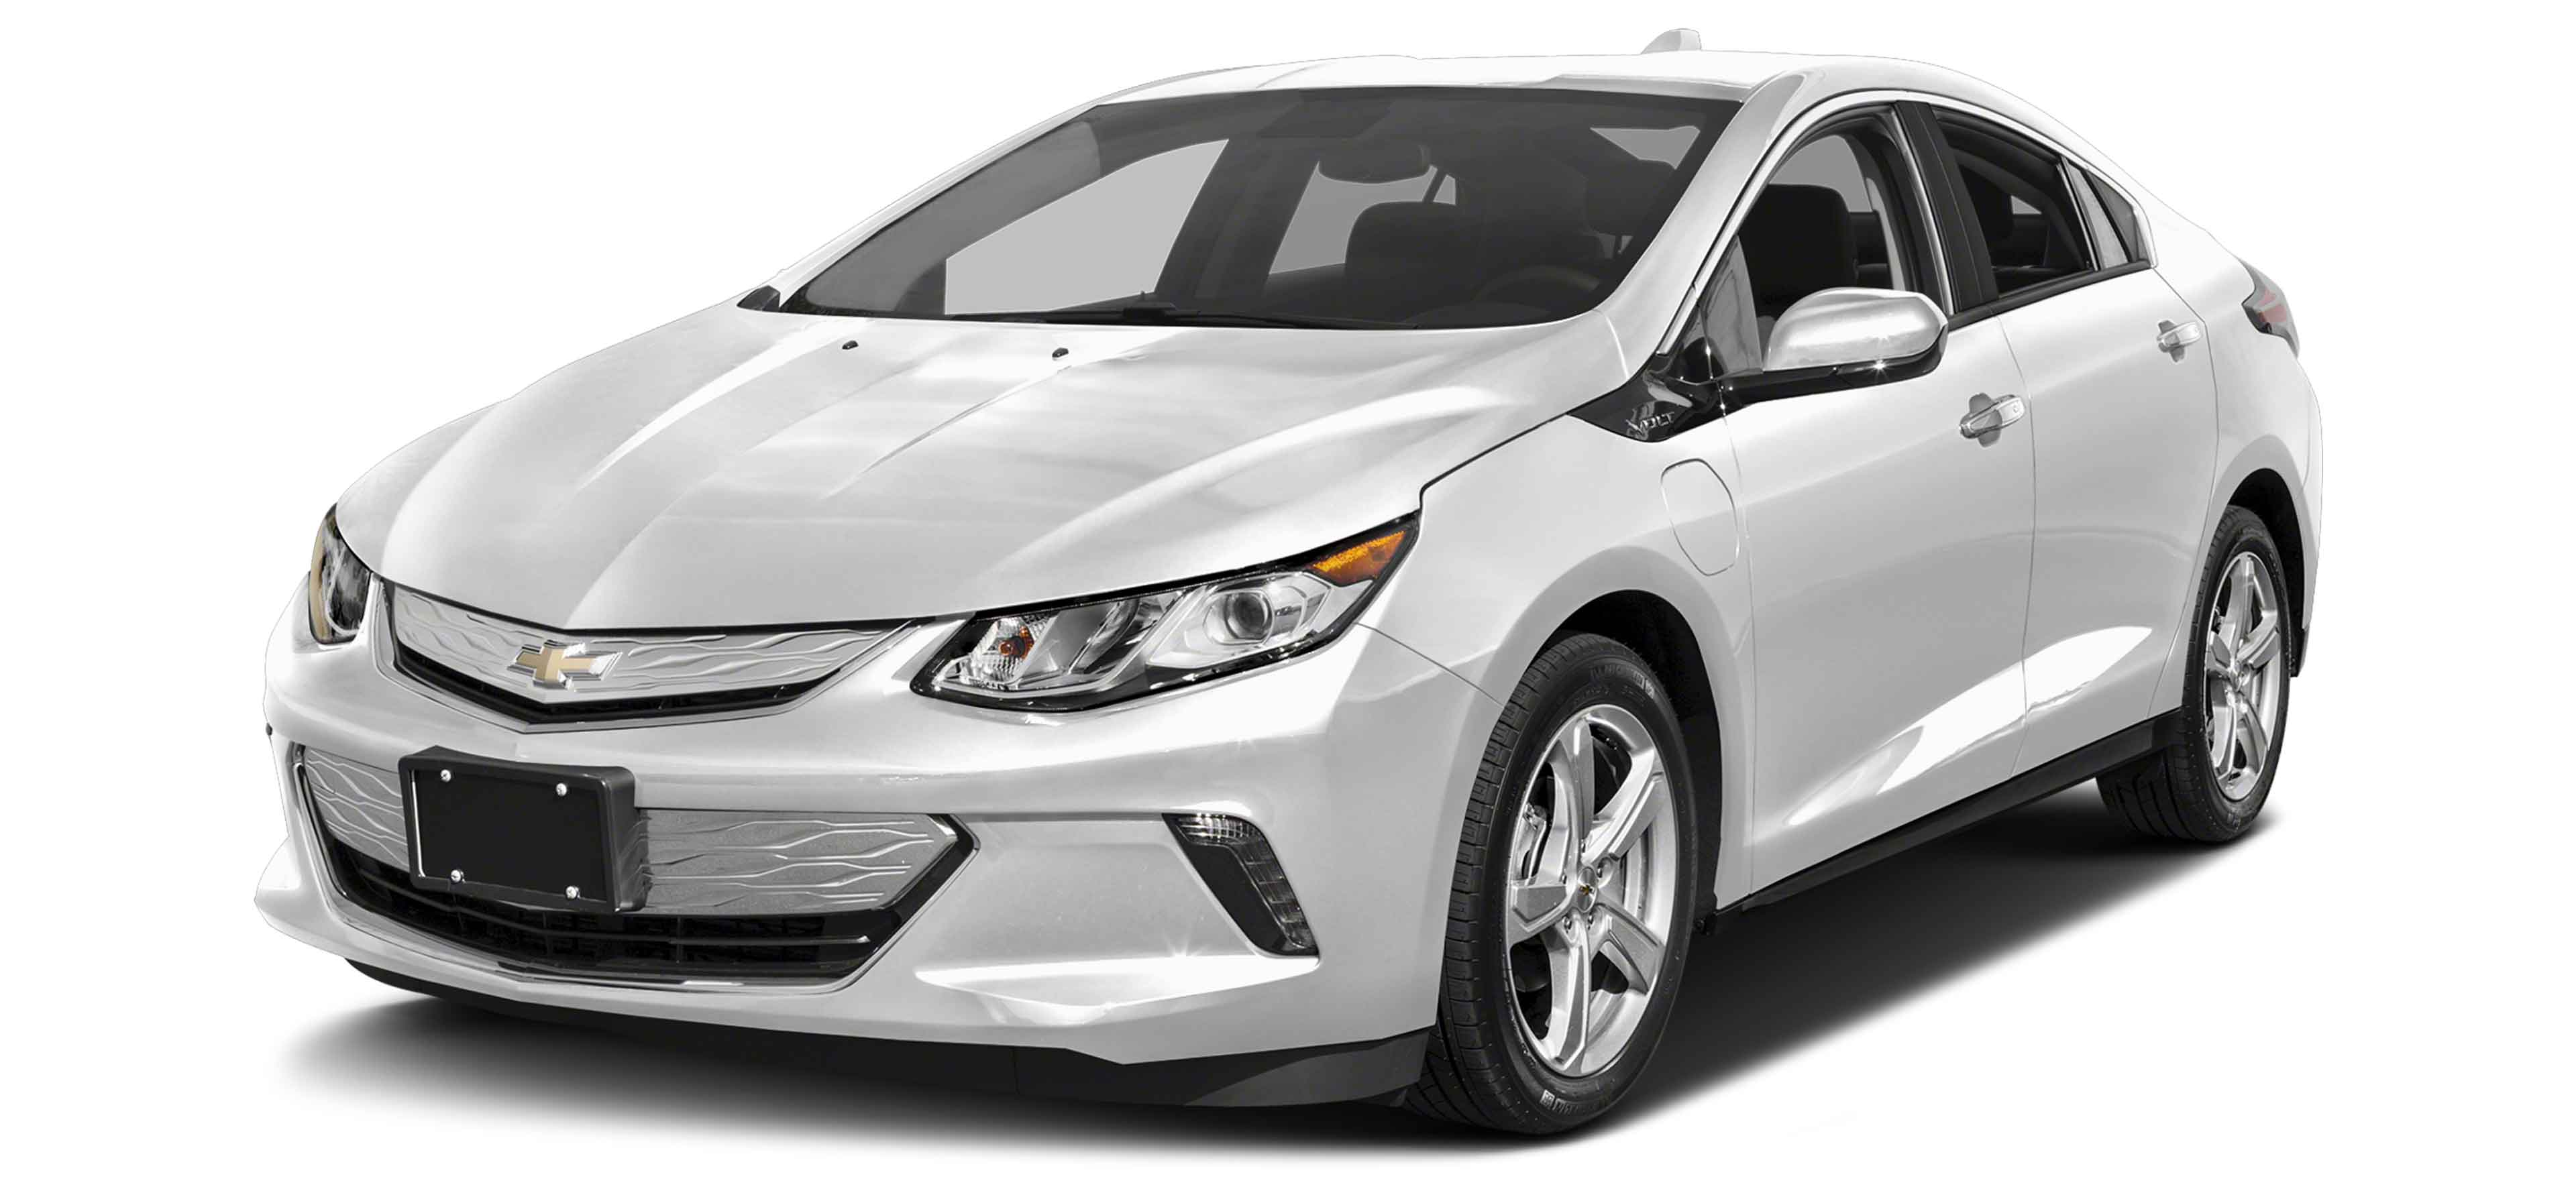 chevy volt research paper Research the new and used chevrolet volt sedan see volt photos, videos, reviews, pricing, mpg, specs, rebates & incentives, safety features, recalls, and more.